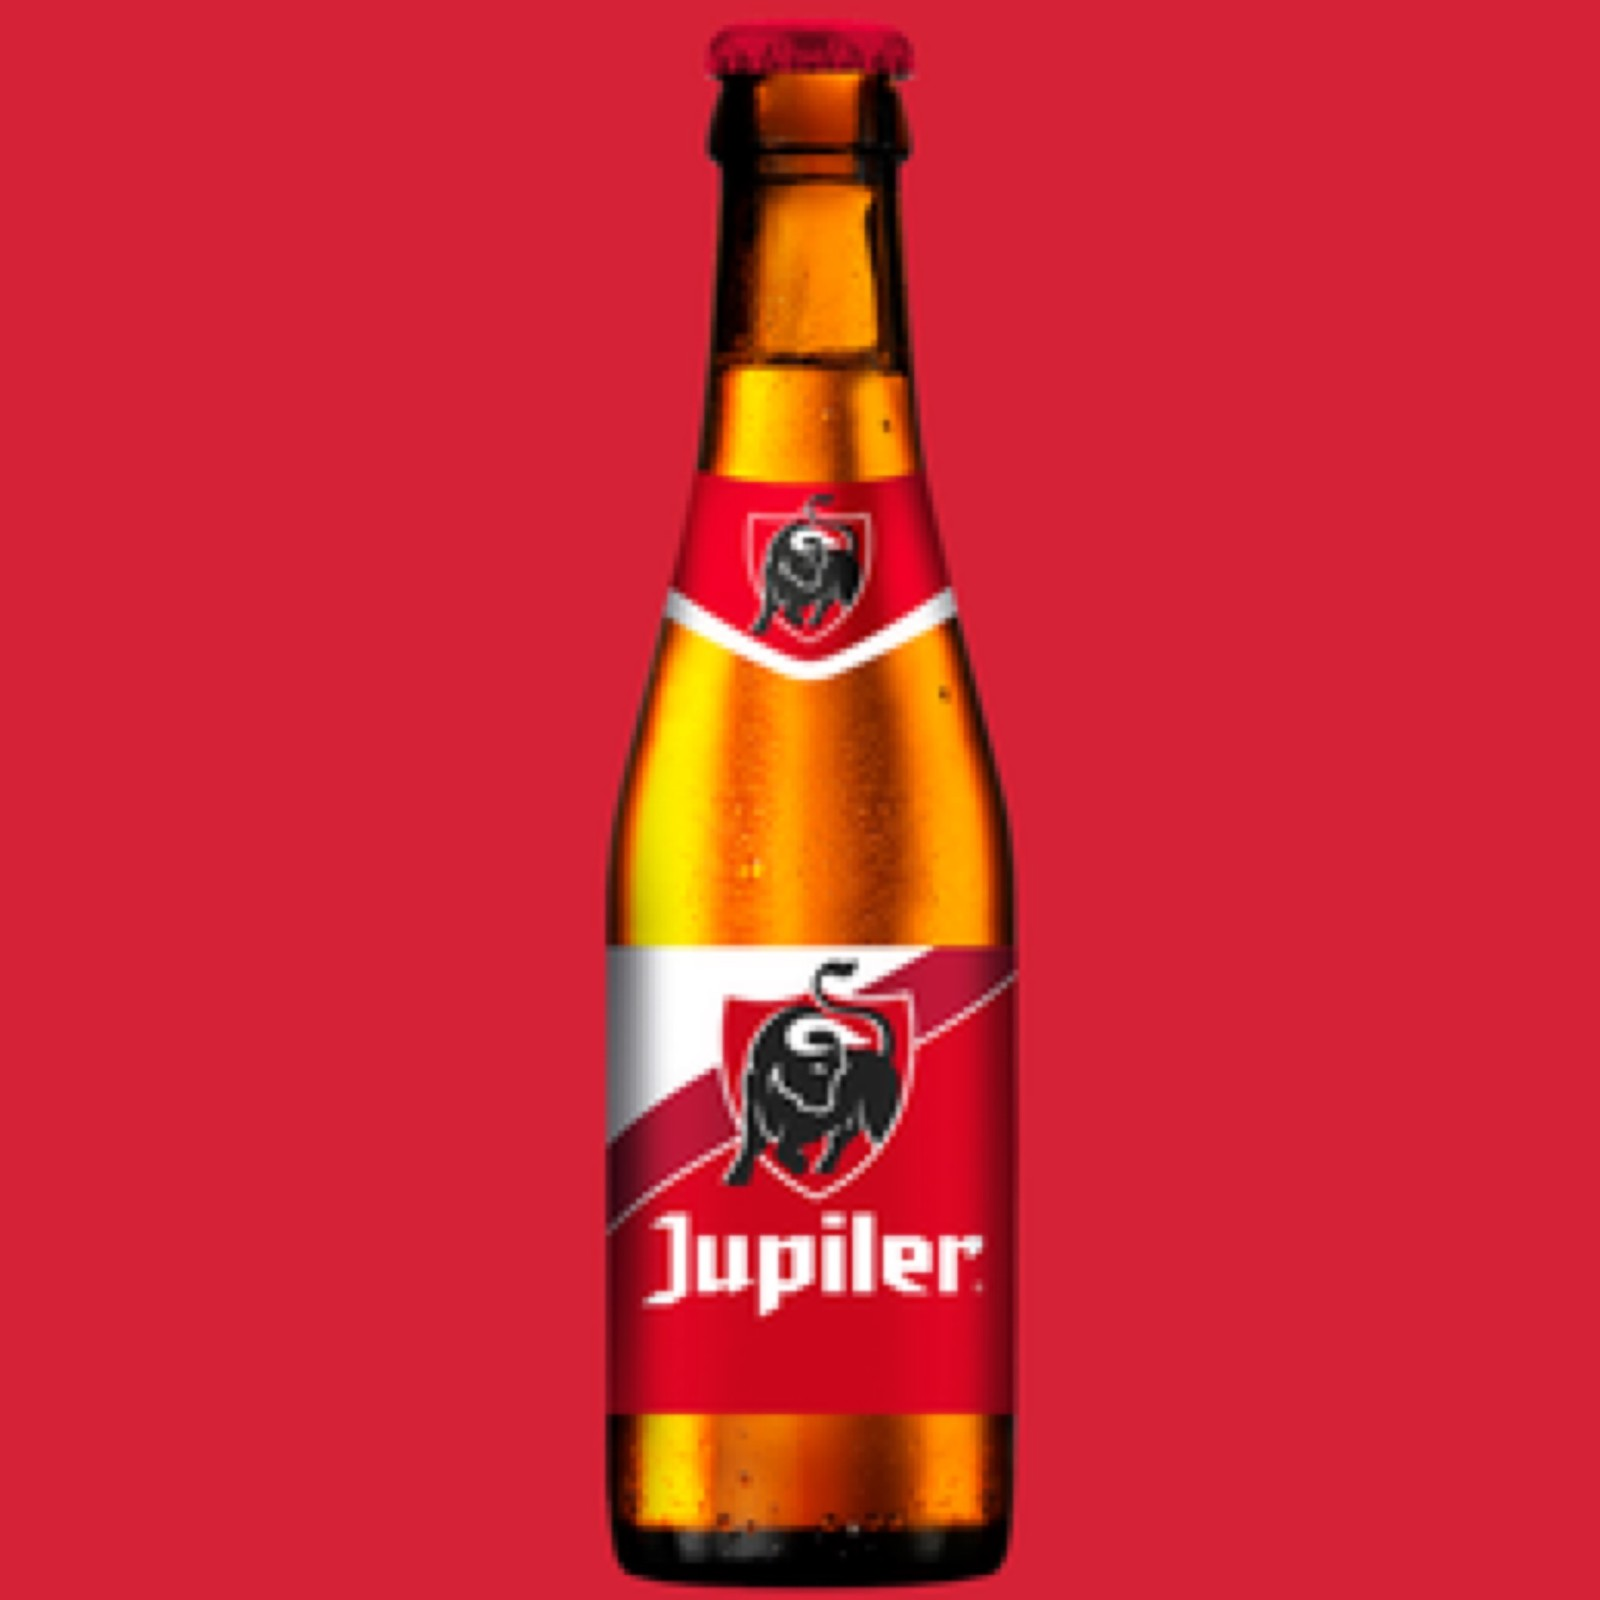 Jupiler Pils 5.2% 330ml